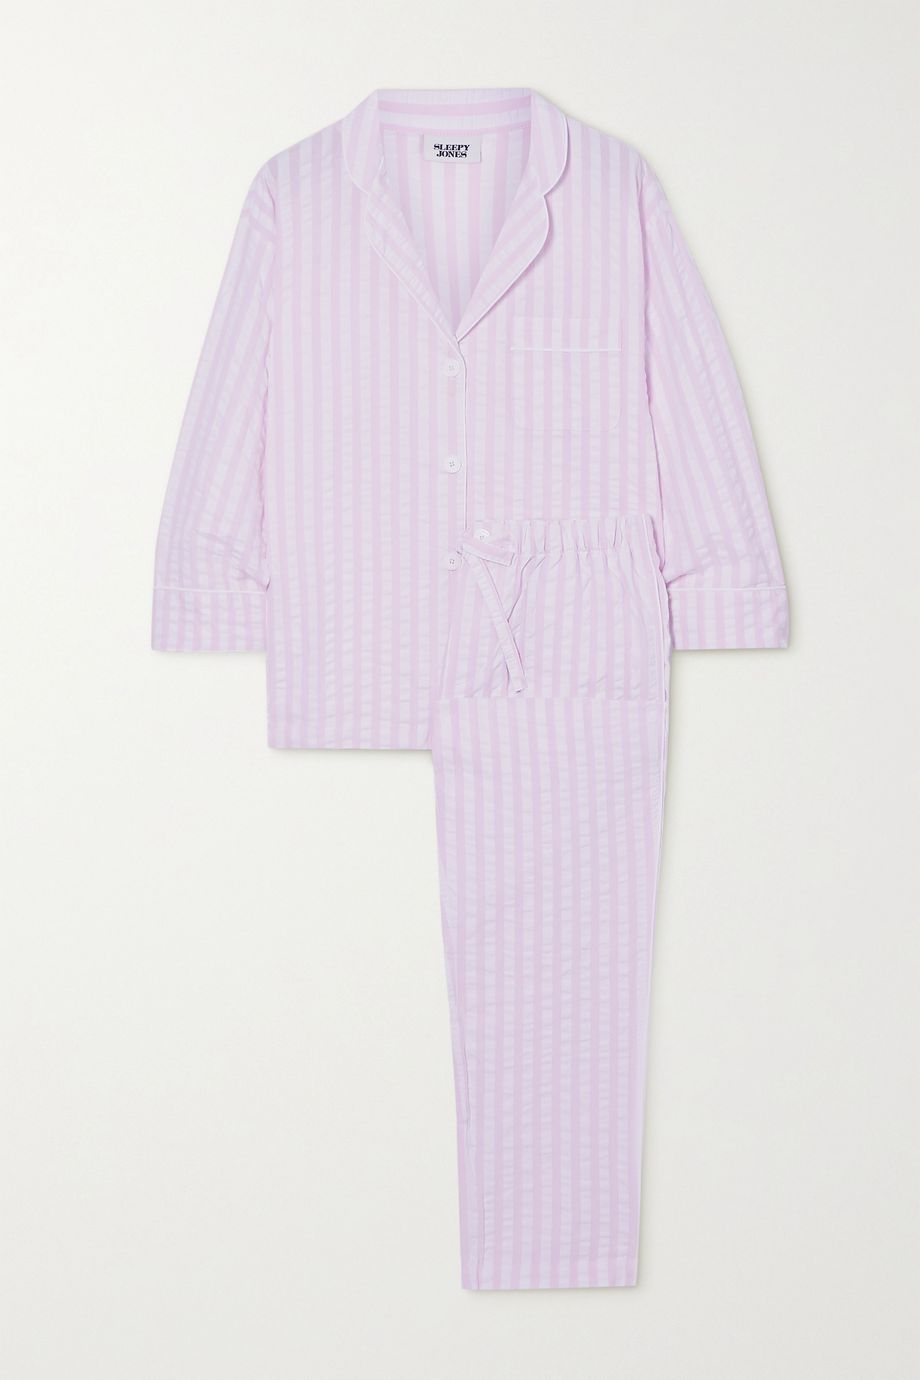 Sleepy Jones Marina striped cotton-seersucker pajama set